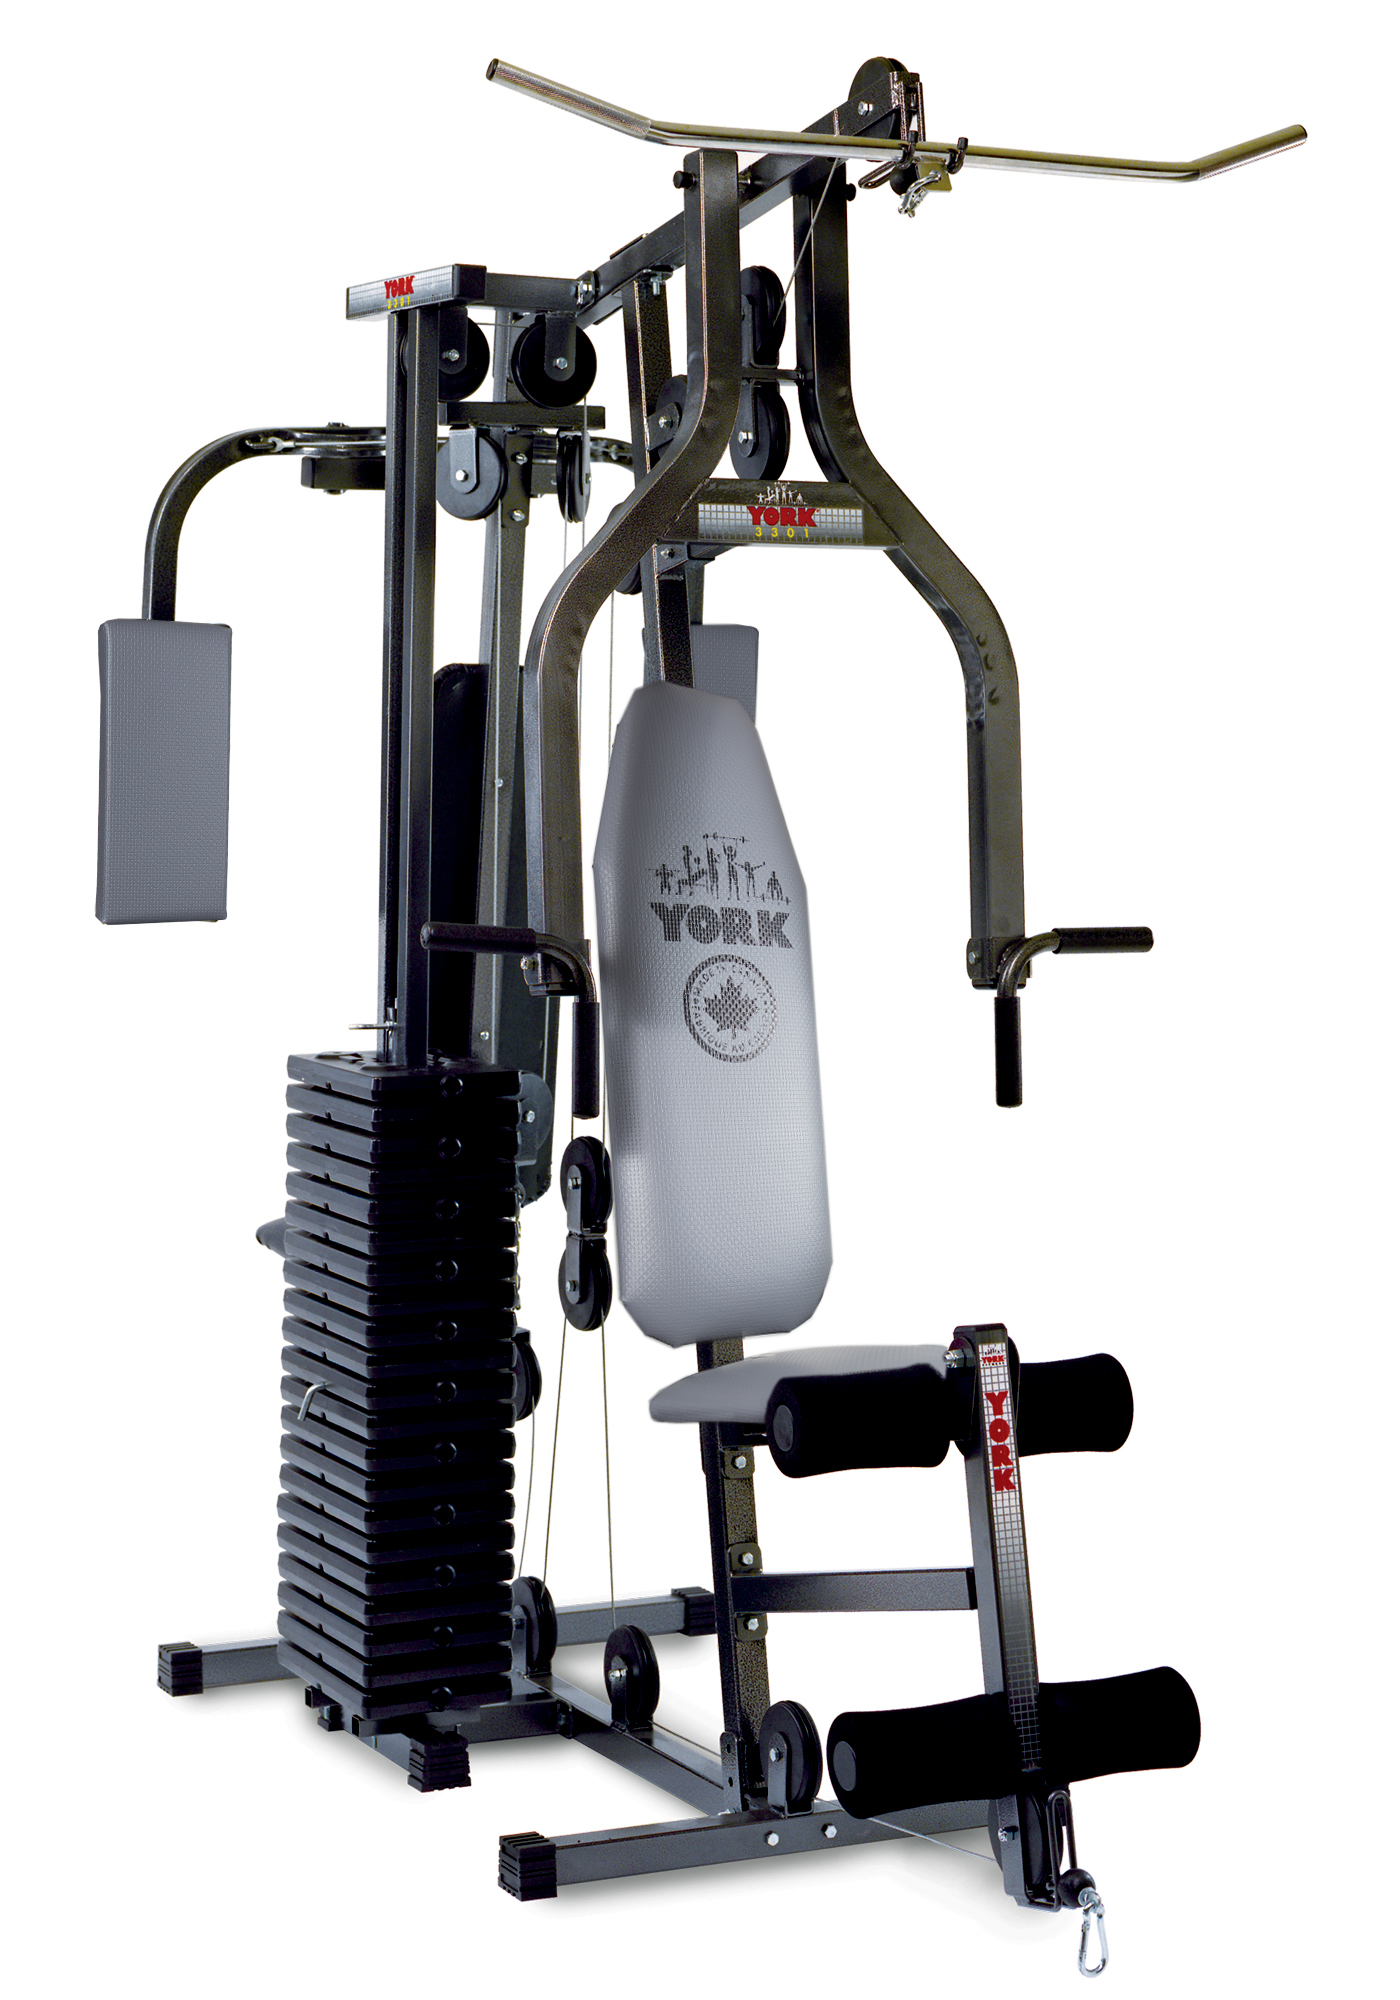 3301 power max home gym home gym equipment york barbell